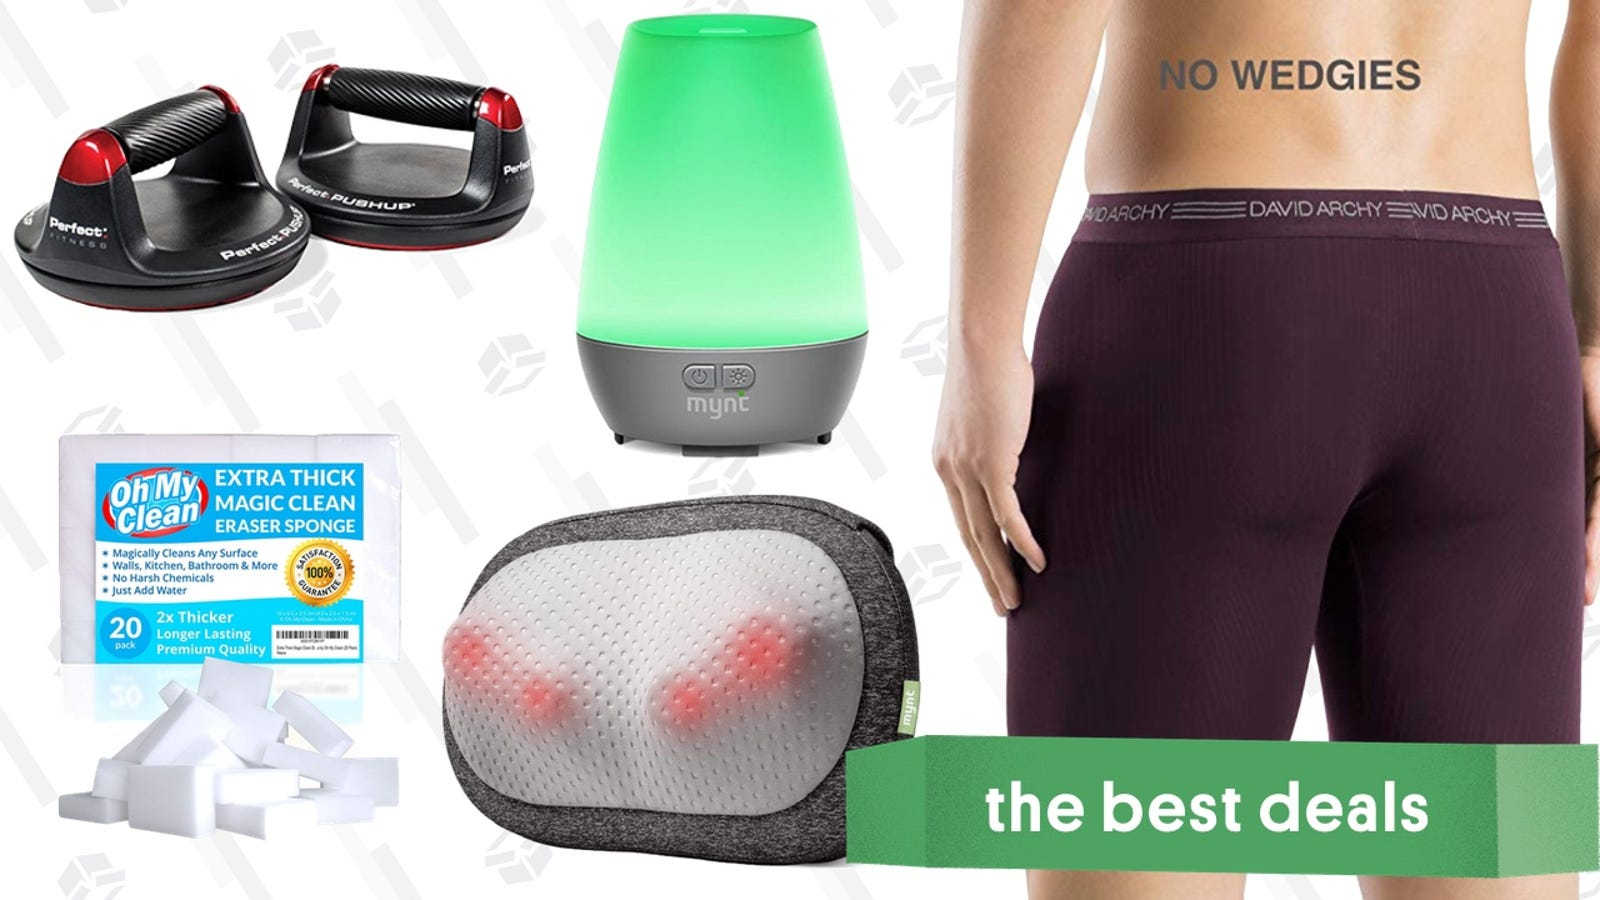 Friday's Best Deals: 20% Off Amazon Warehouse, Foam Mattresses, Bamboo Underwear, and More